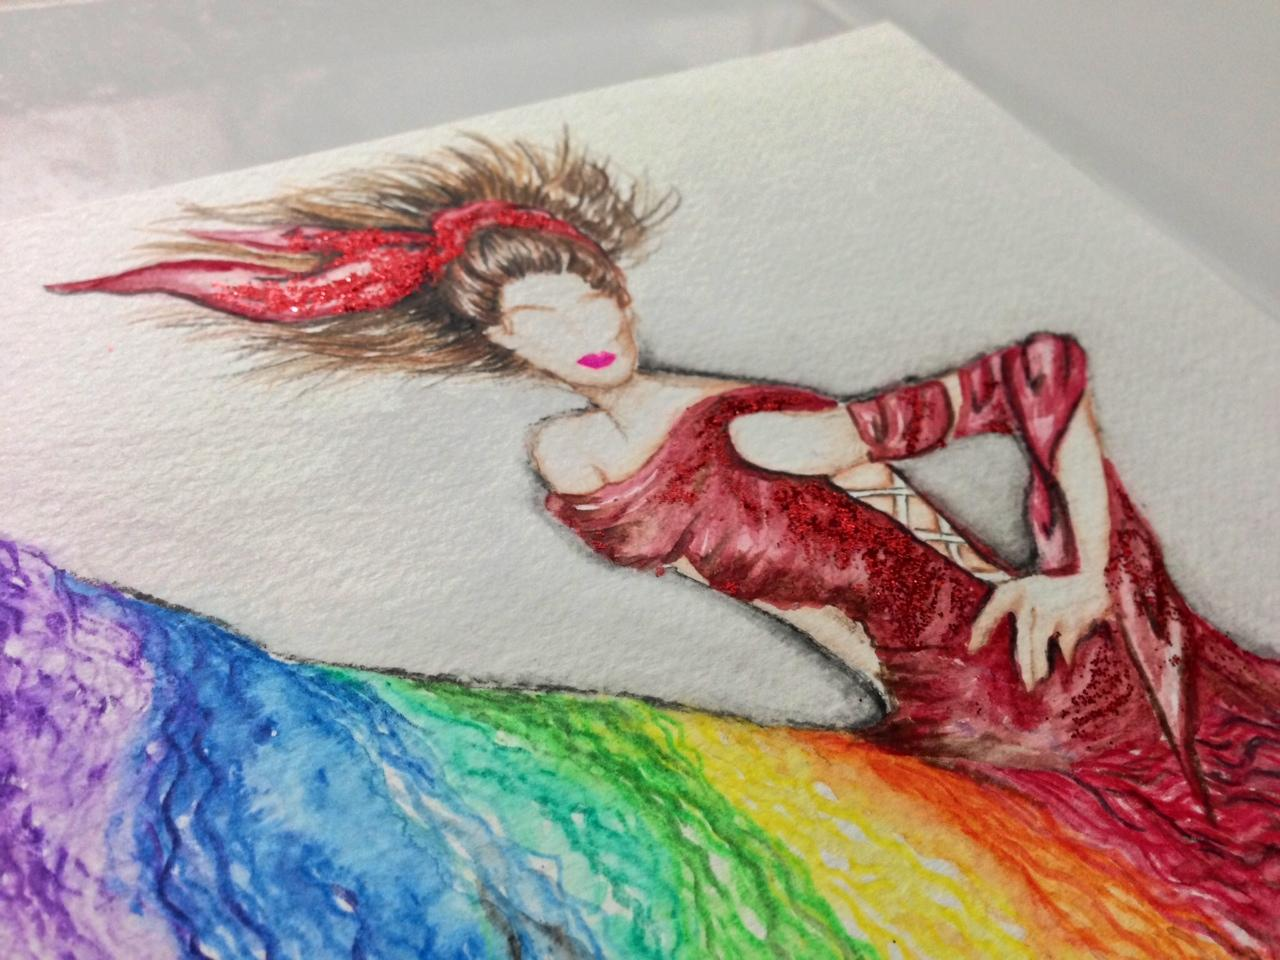 Final watercolour - I see you in my dreams - image 4 - student project